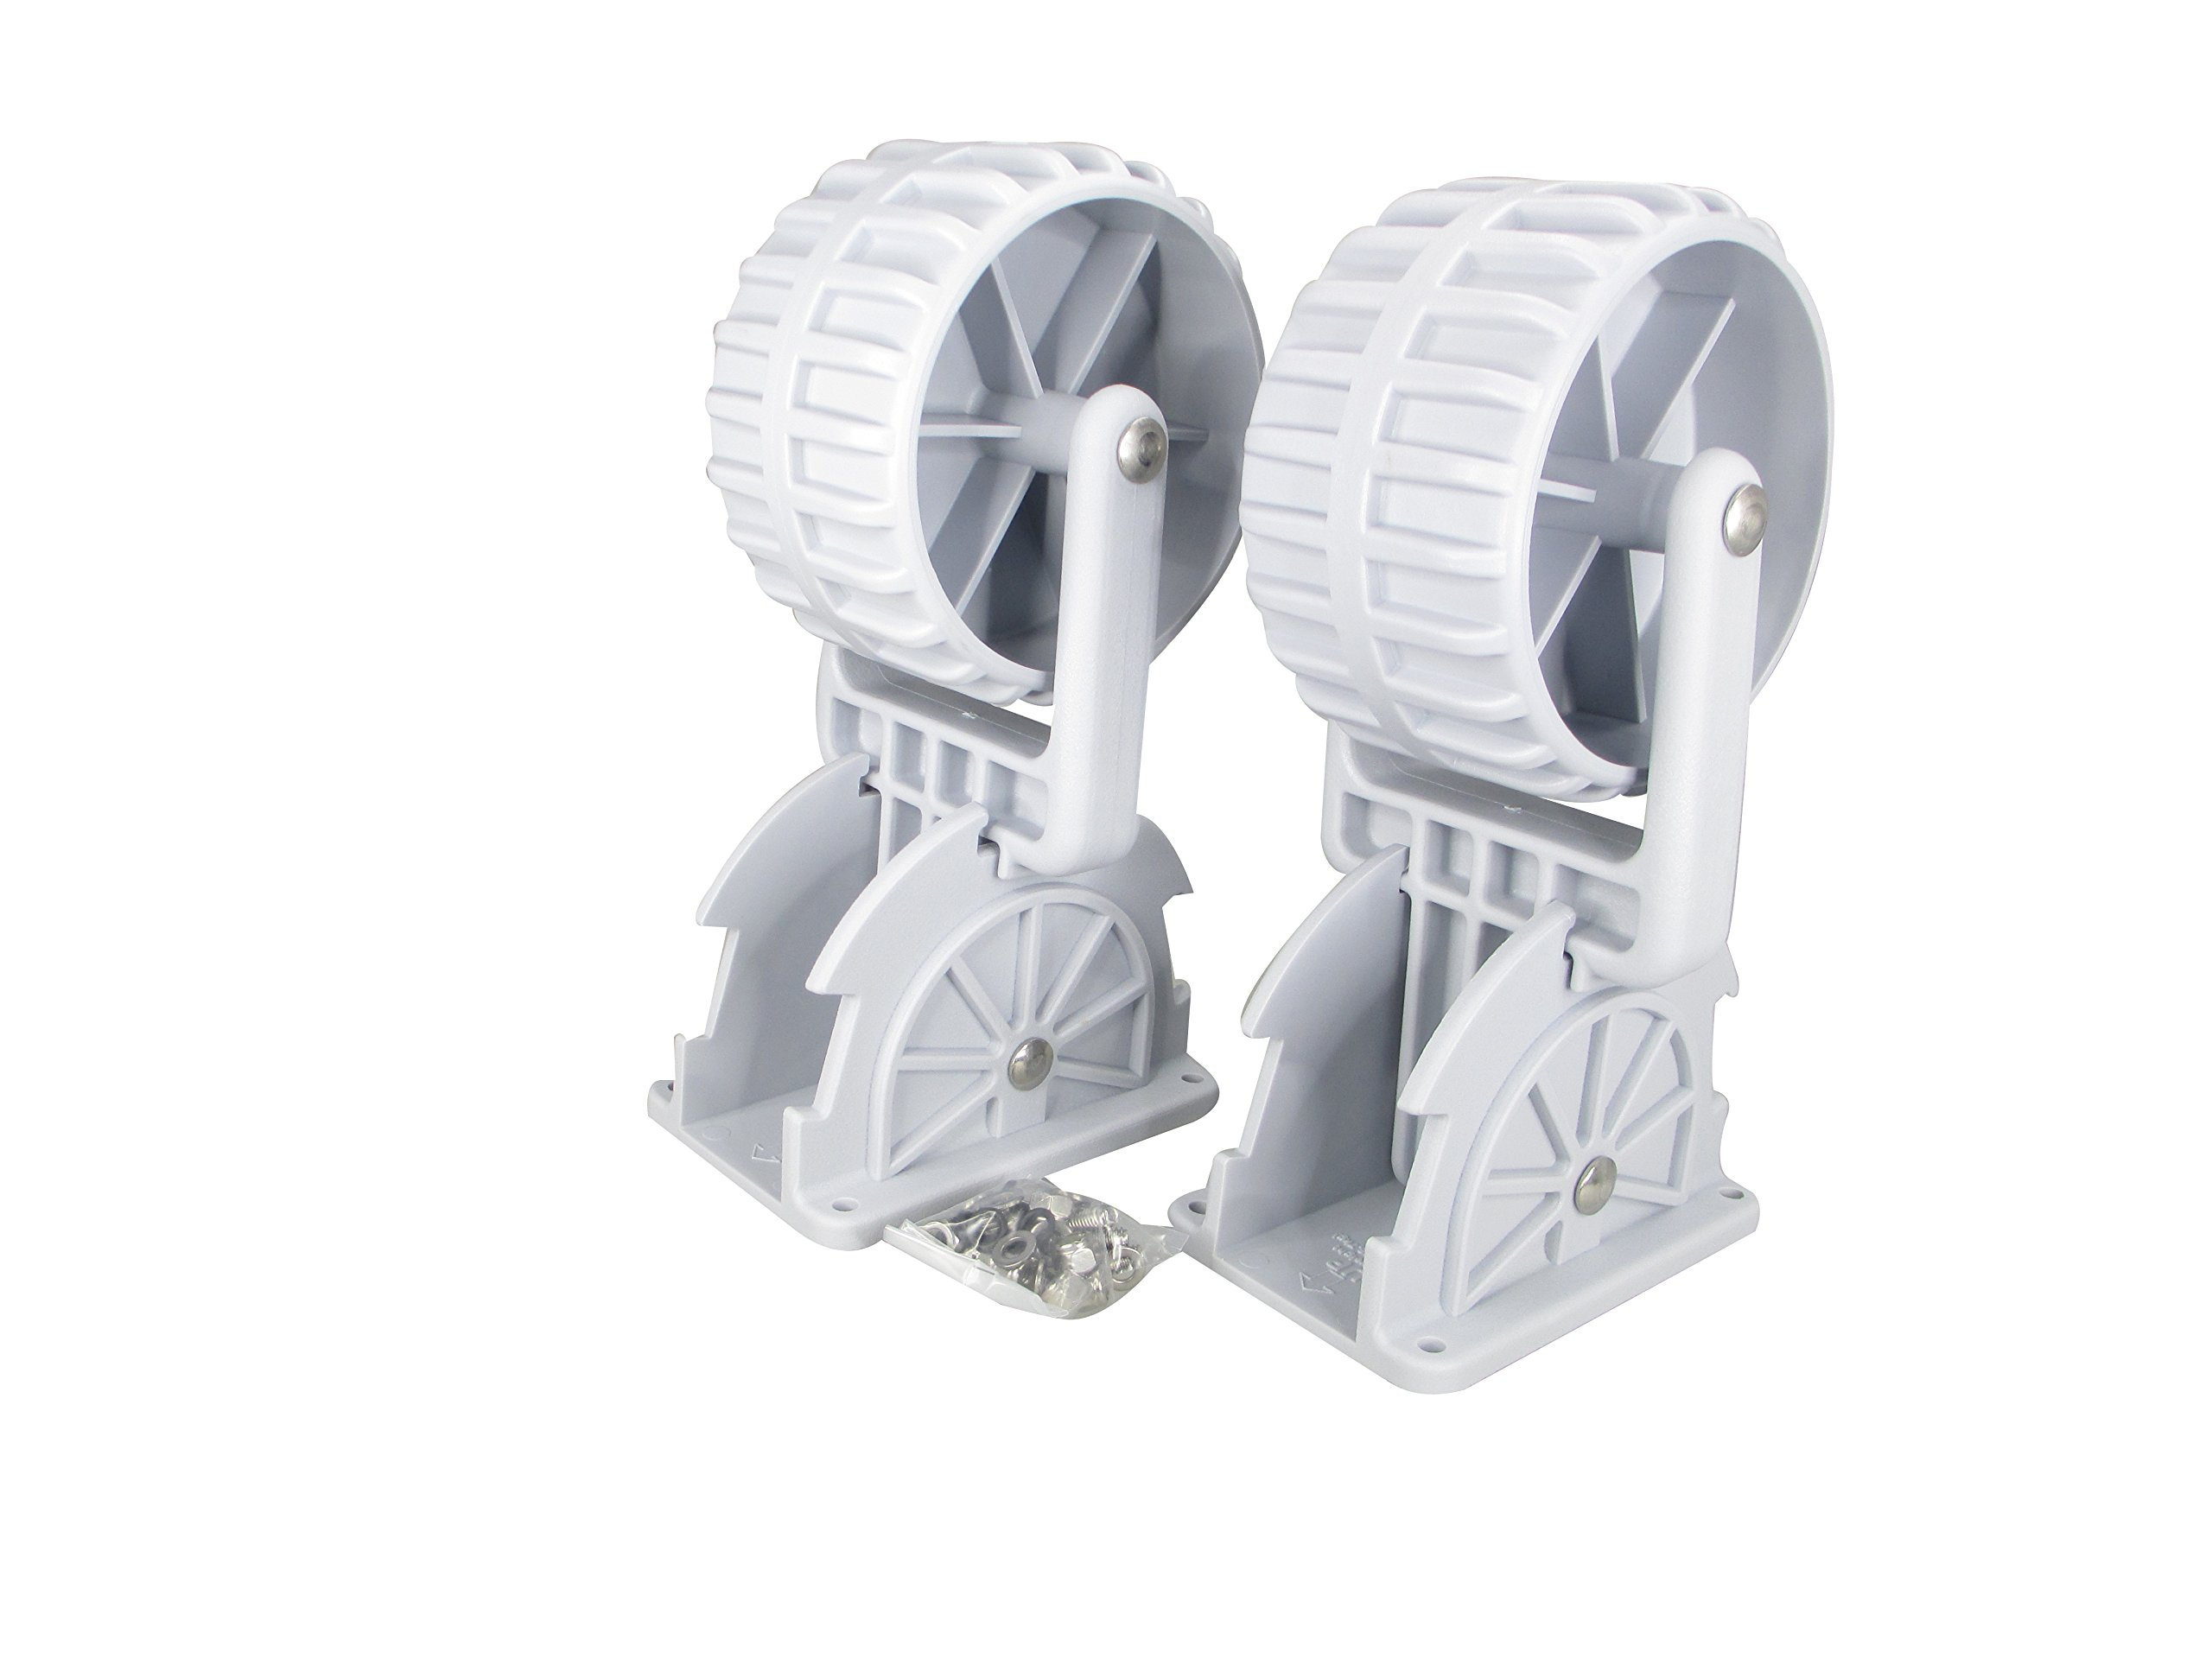 Pactrade Marine Flip-up Retrackable Dinghy Wheels Pair Nylon Inflatable Boat Launching Wheels/Boat Dolly by Pactrade Marine